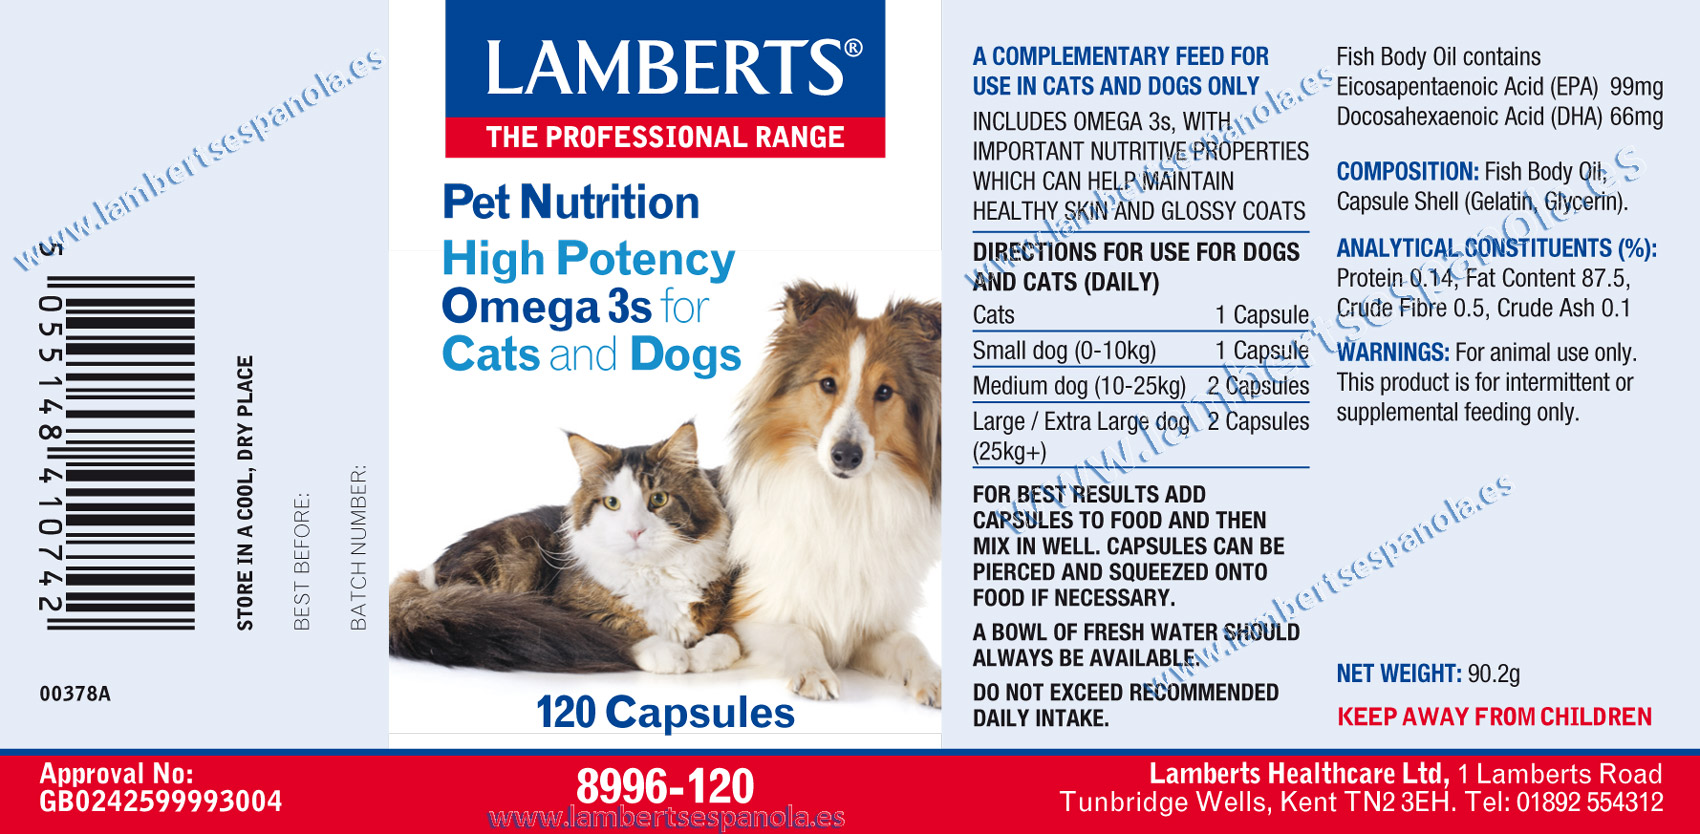 Omega 3 for dogs and cats properties. Lamberts